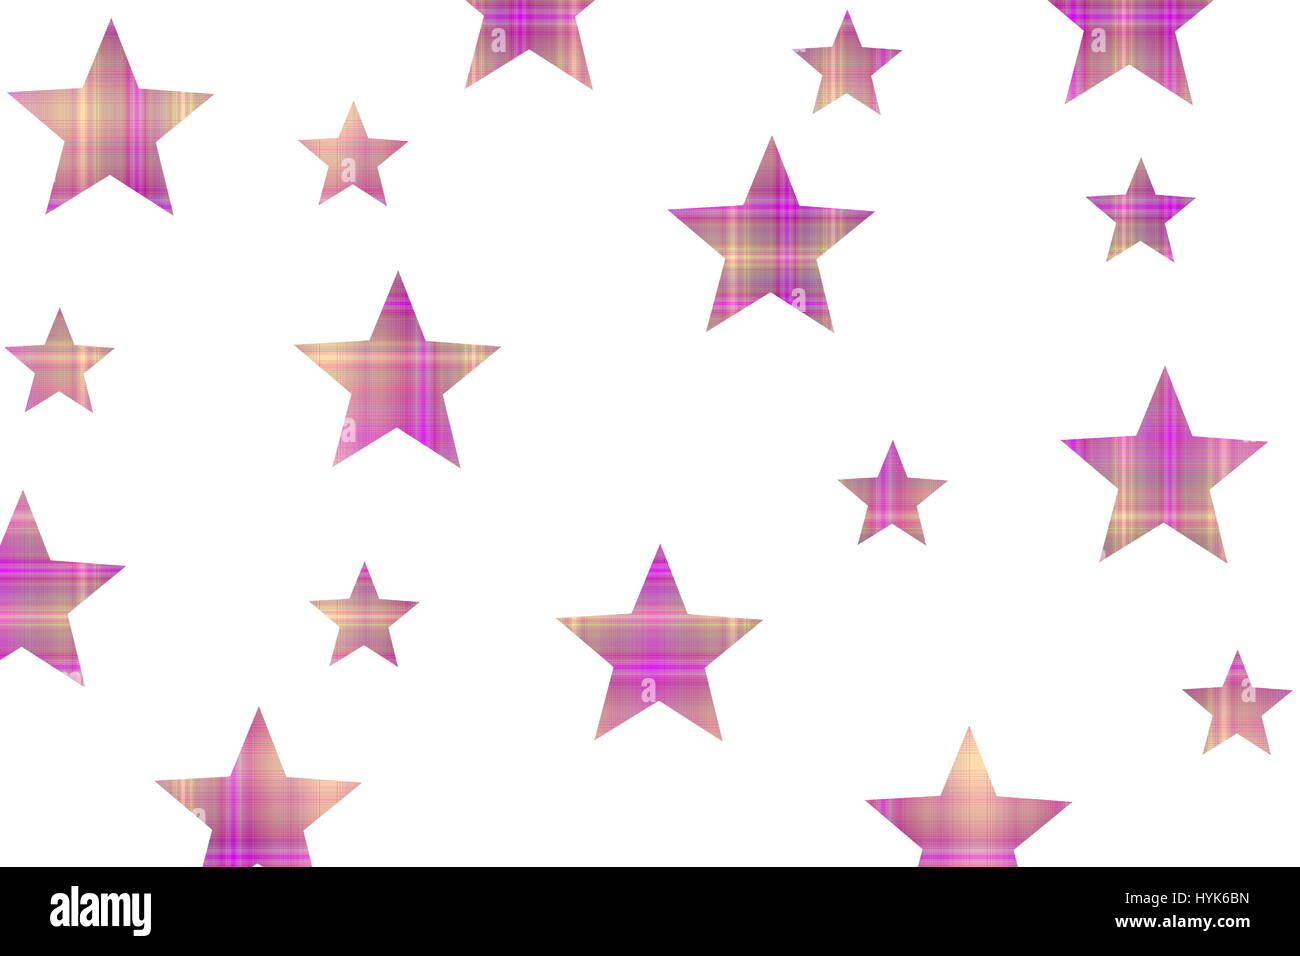 Checkered stars on a white background - Stock Image